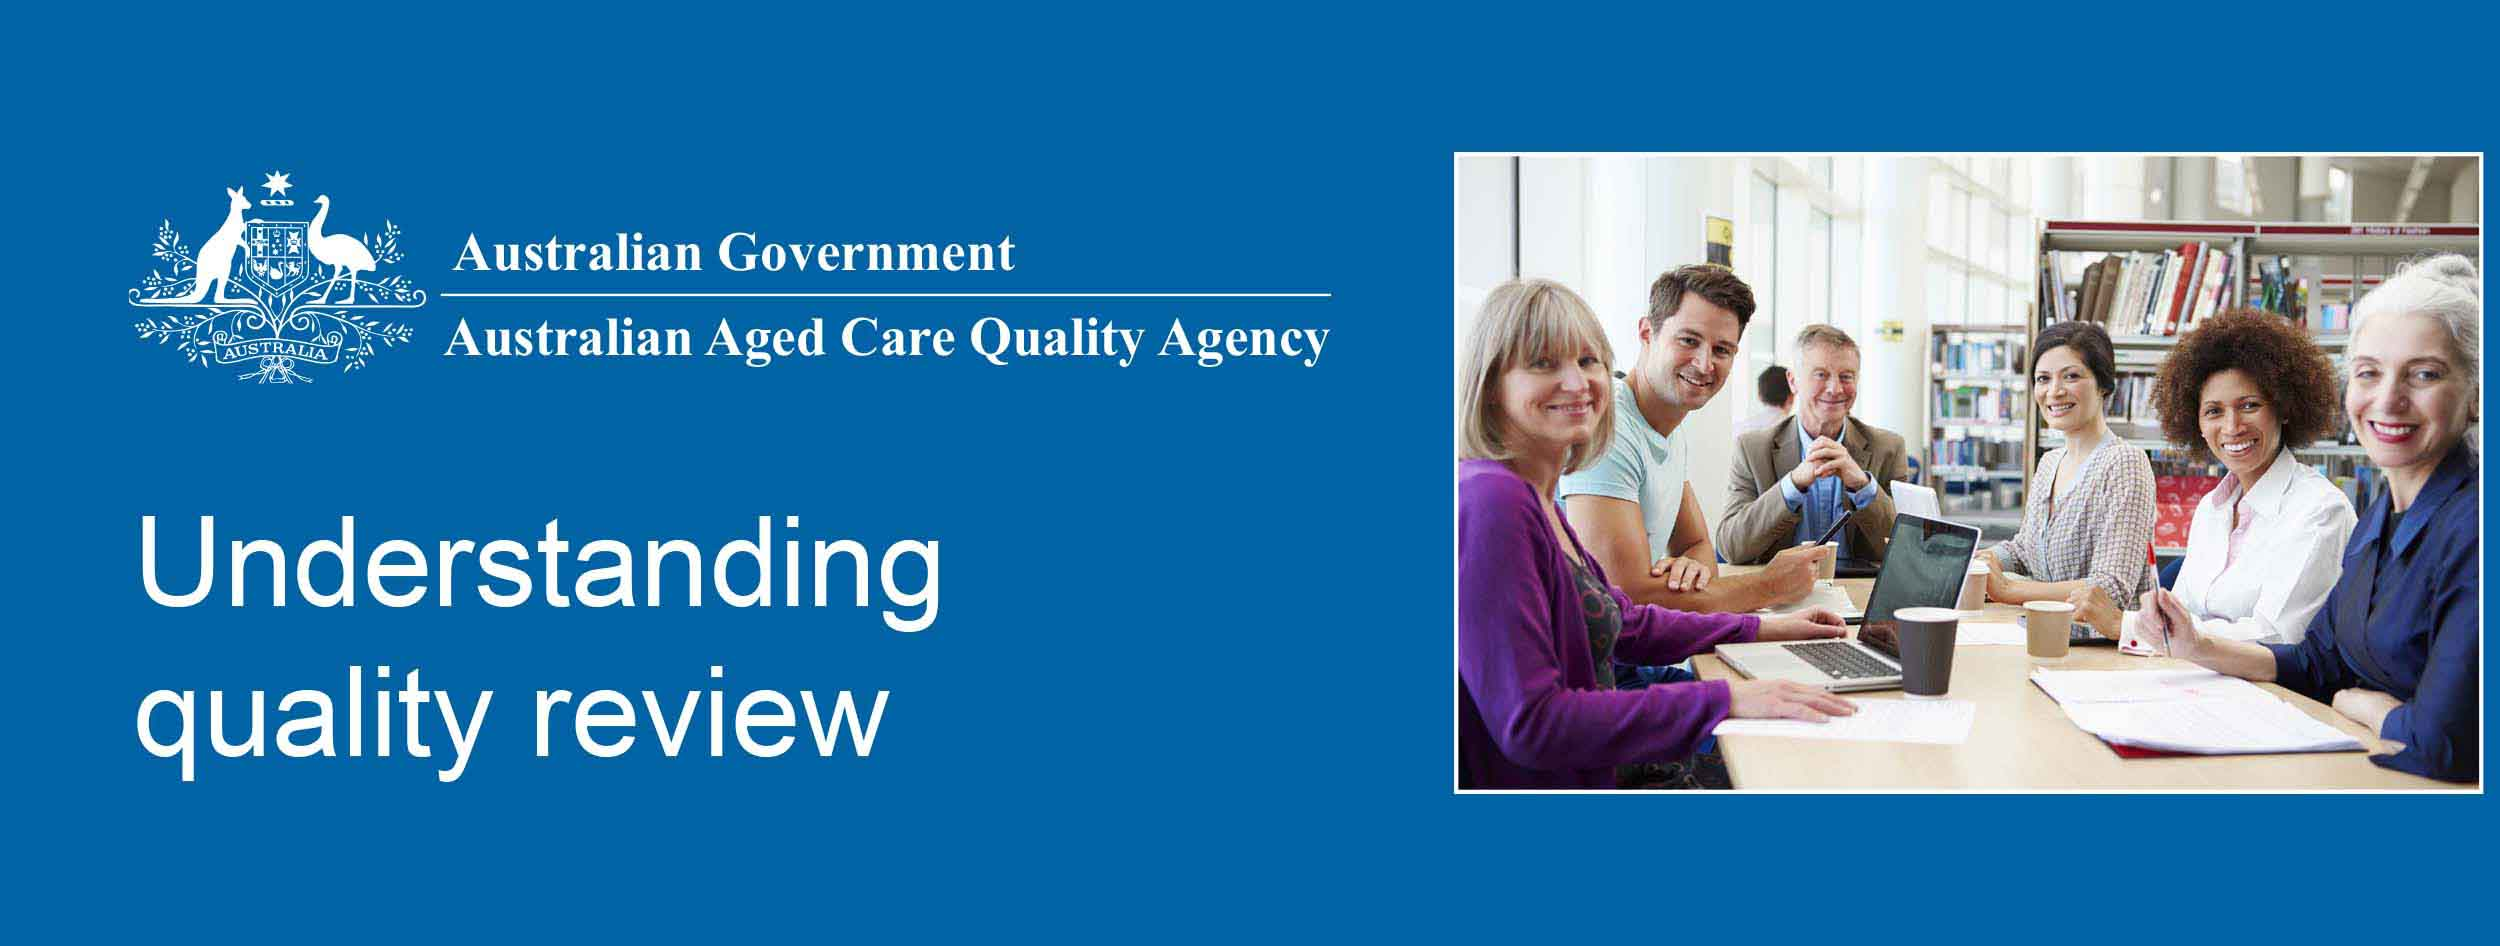 Understanding quality review - Parramatta - 11 - 12 October 2017